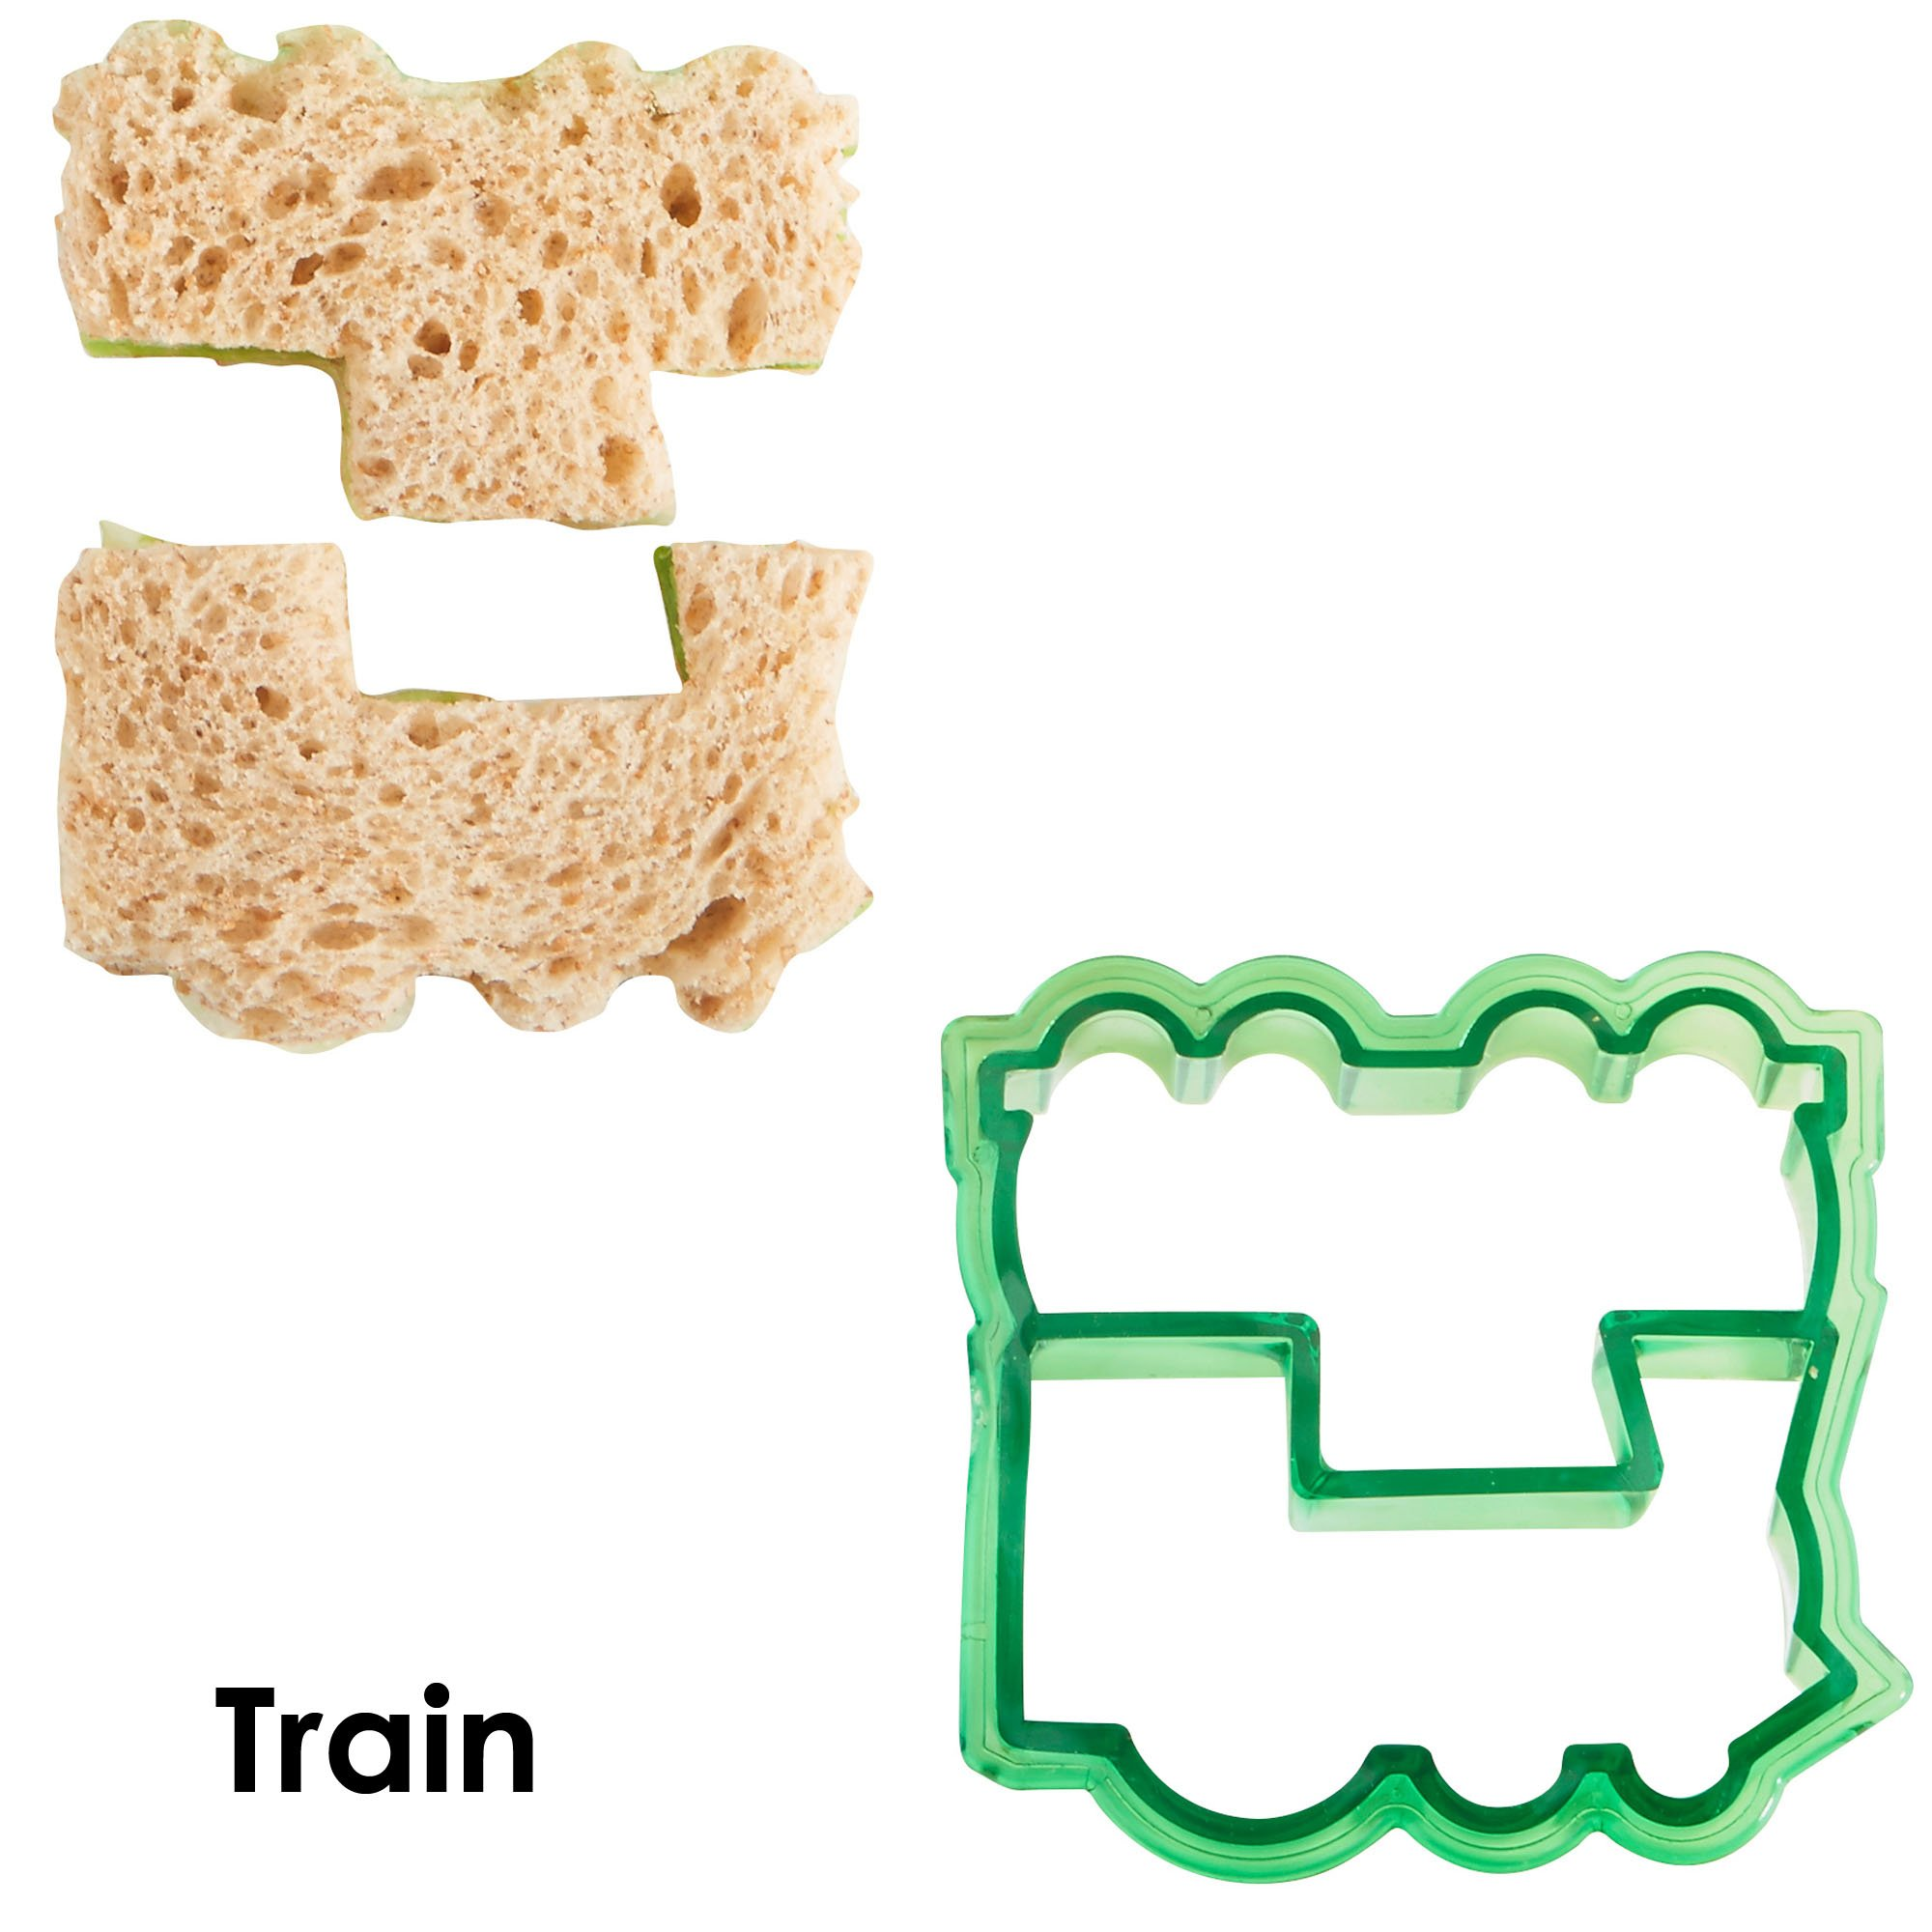 VonShef Fun Cookie Cake and Sandwich Cutter Shapes for Kids, Set of 5 Shapes Dinosaur, Dolphin, Heart, Star and Train, Multi Colored, 5pc by VonShef (Image #5)